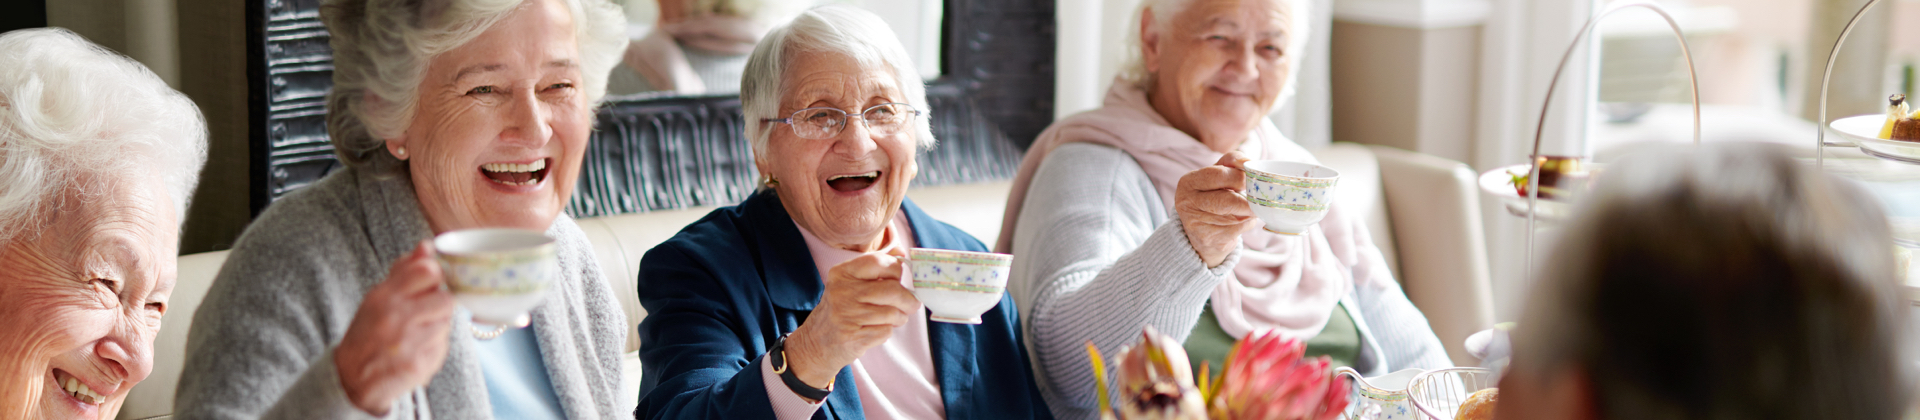 A group of seniors toast with fine china and tea